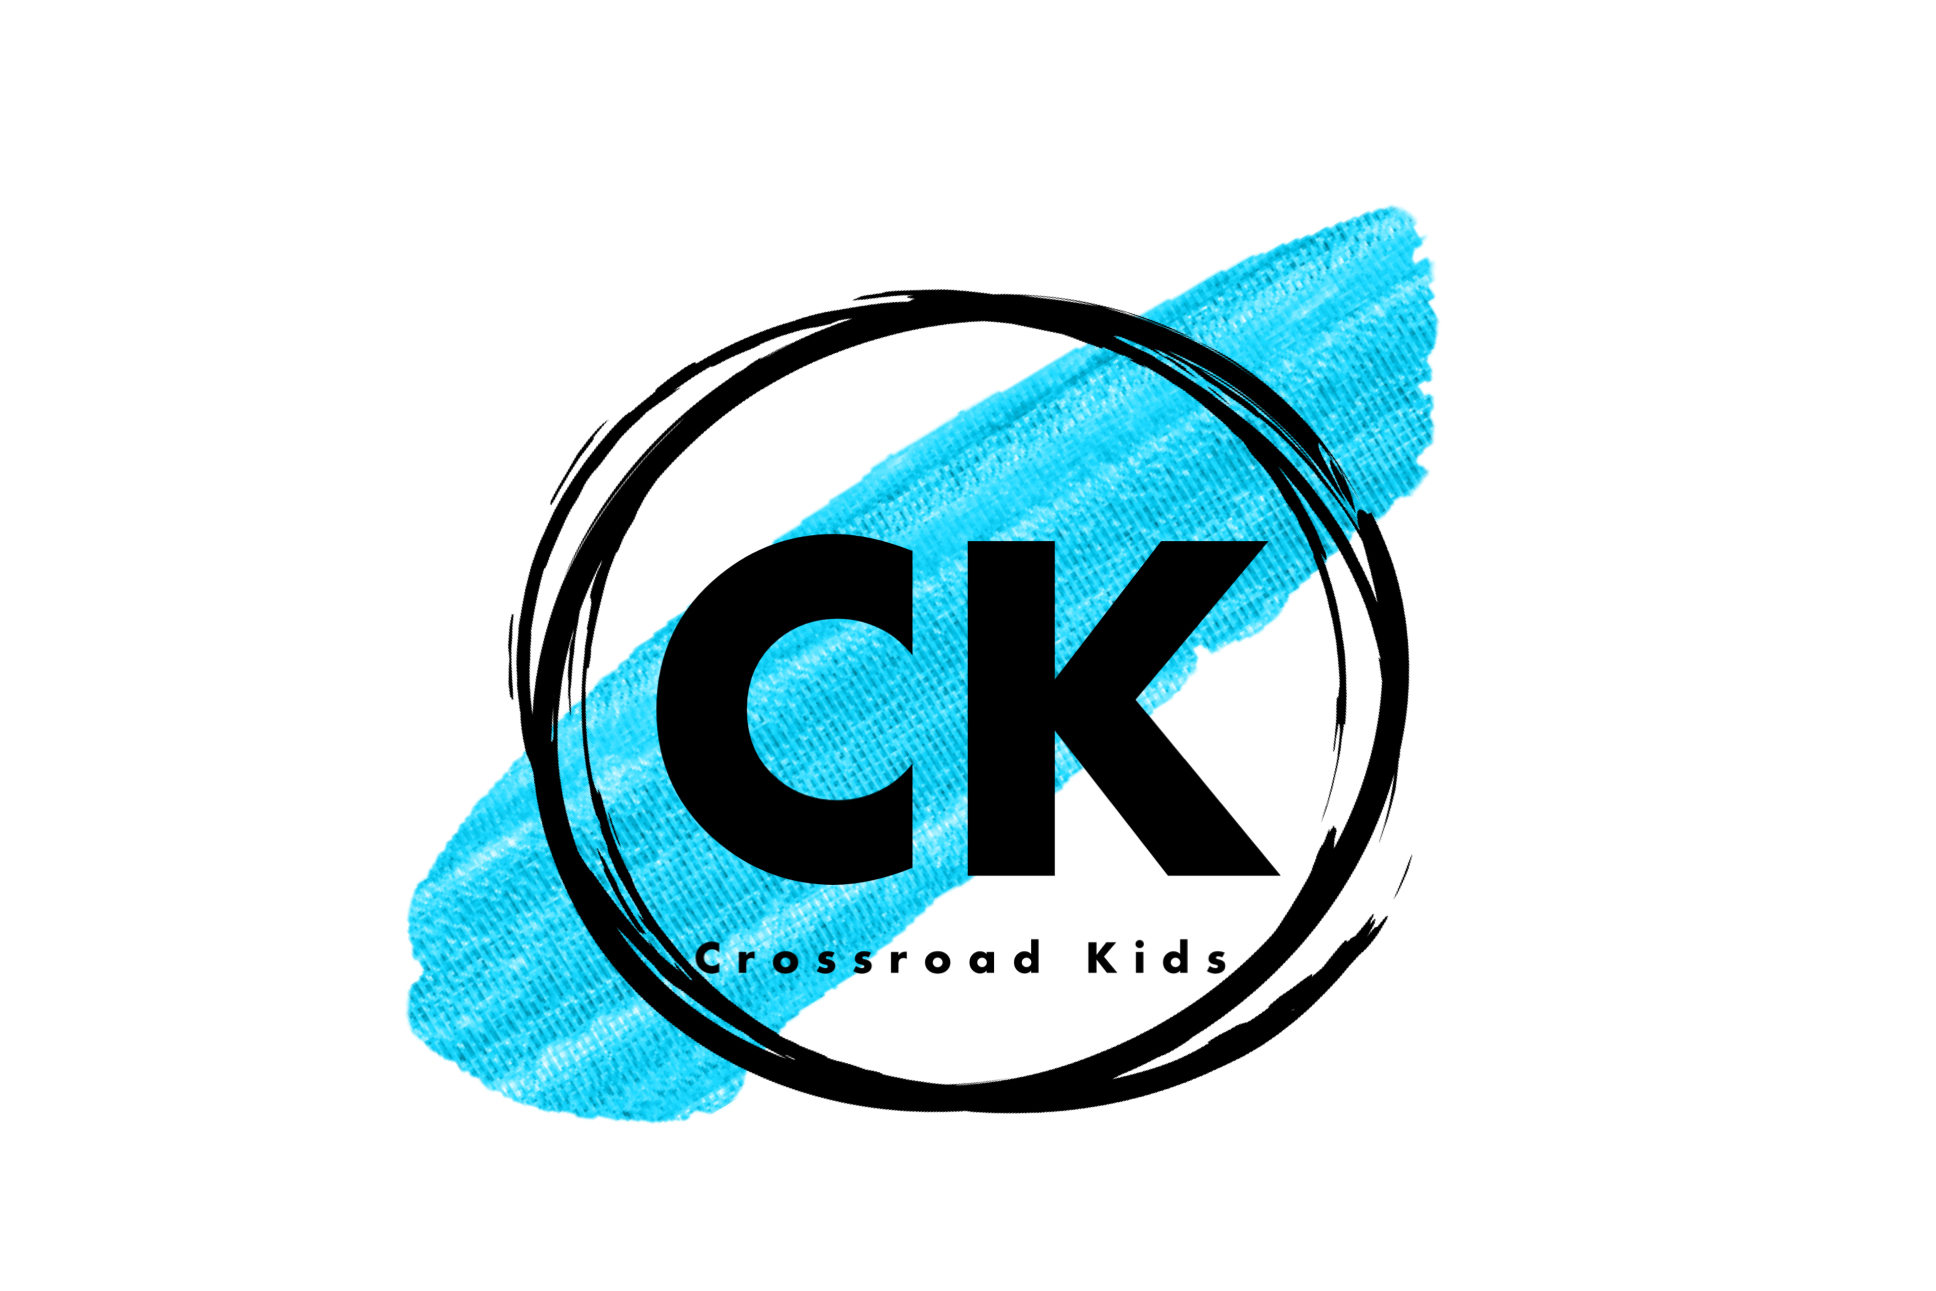 - Crossroad Kids is our Youth Group for ages 4-11. Crossroad Kids meets Monday evenings from 6:30-8:00, September to April. High energy Songs, Bible Lessons, snacks & crafts make for an awesome evening. Come on out and see for yourself. See you soon!